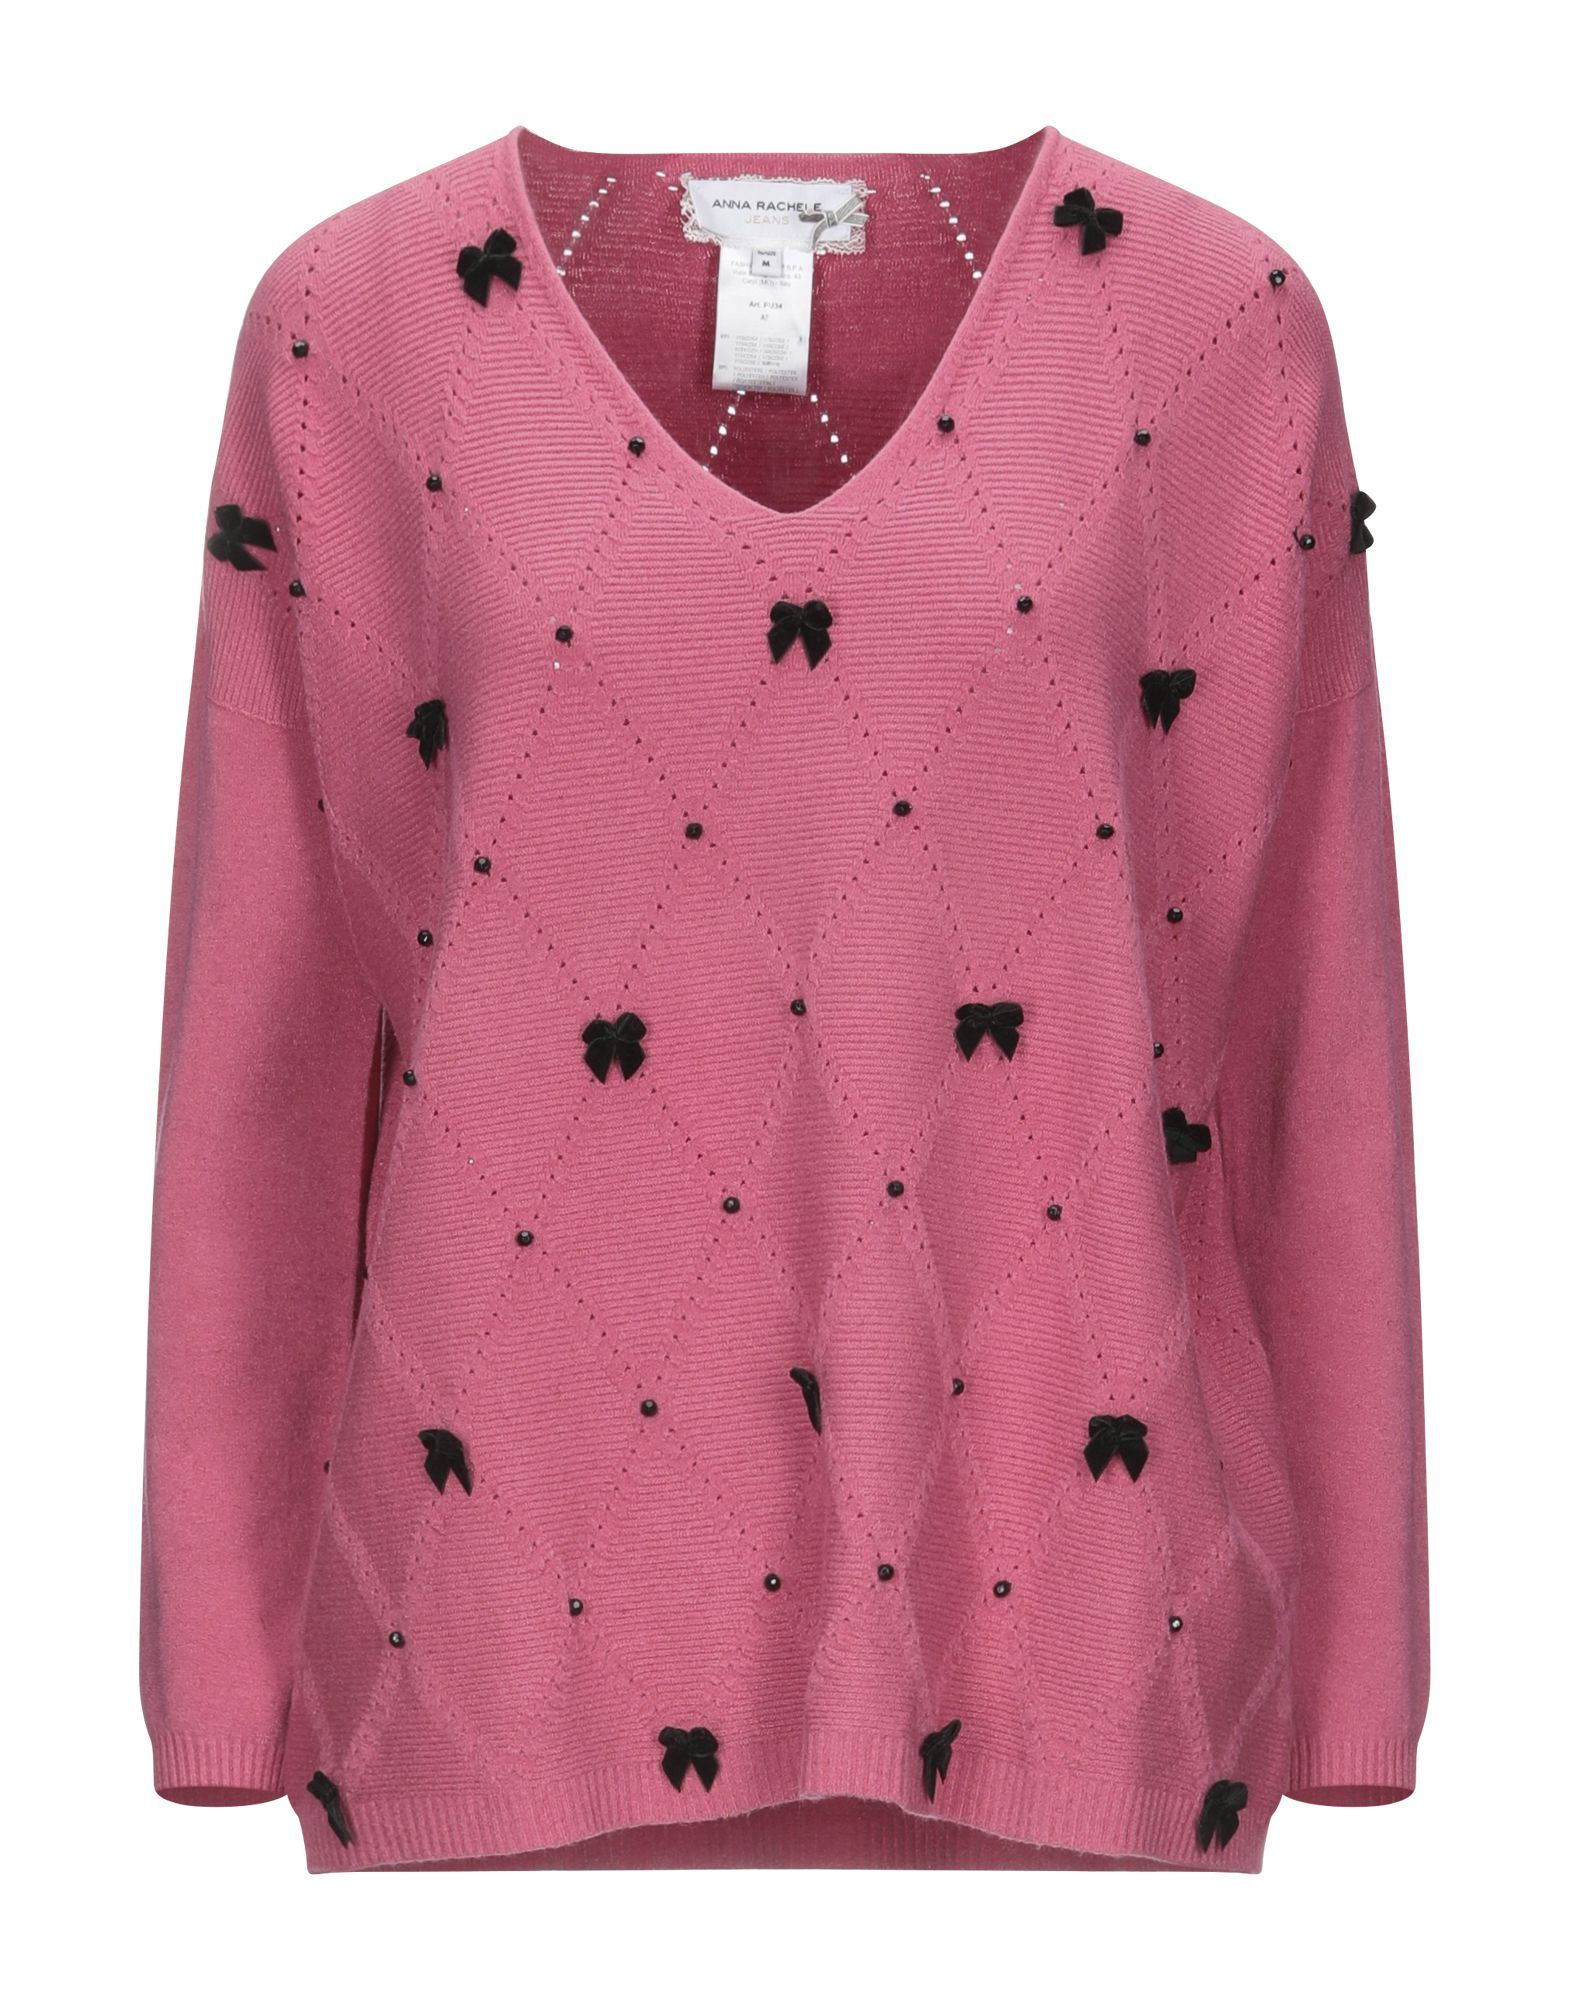 Anna Rachele Jeans Collection Pink Knit Embellished Jumper